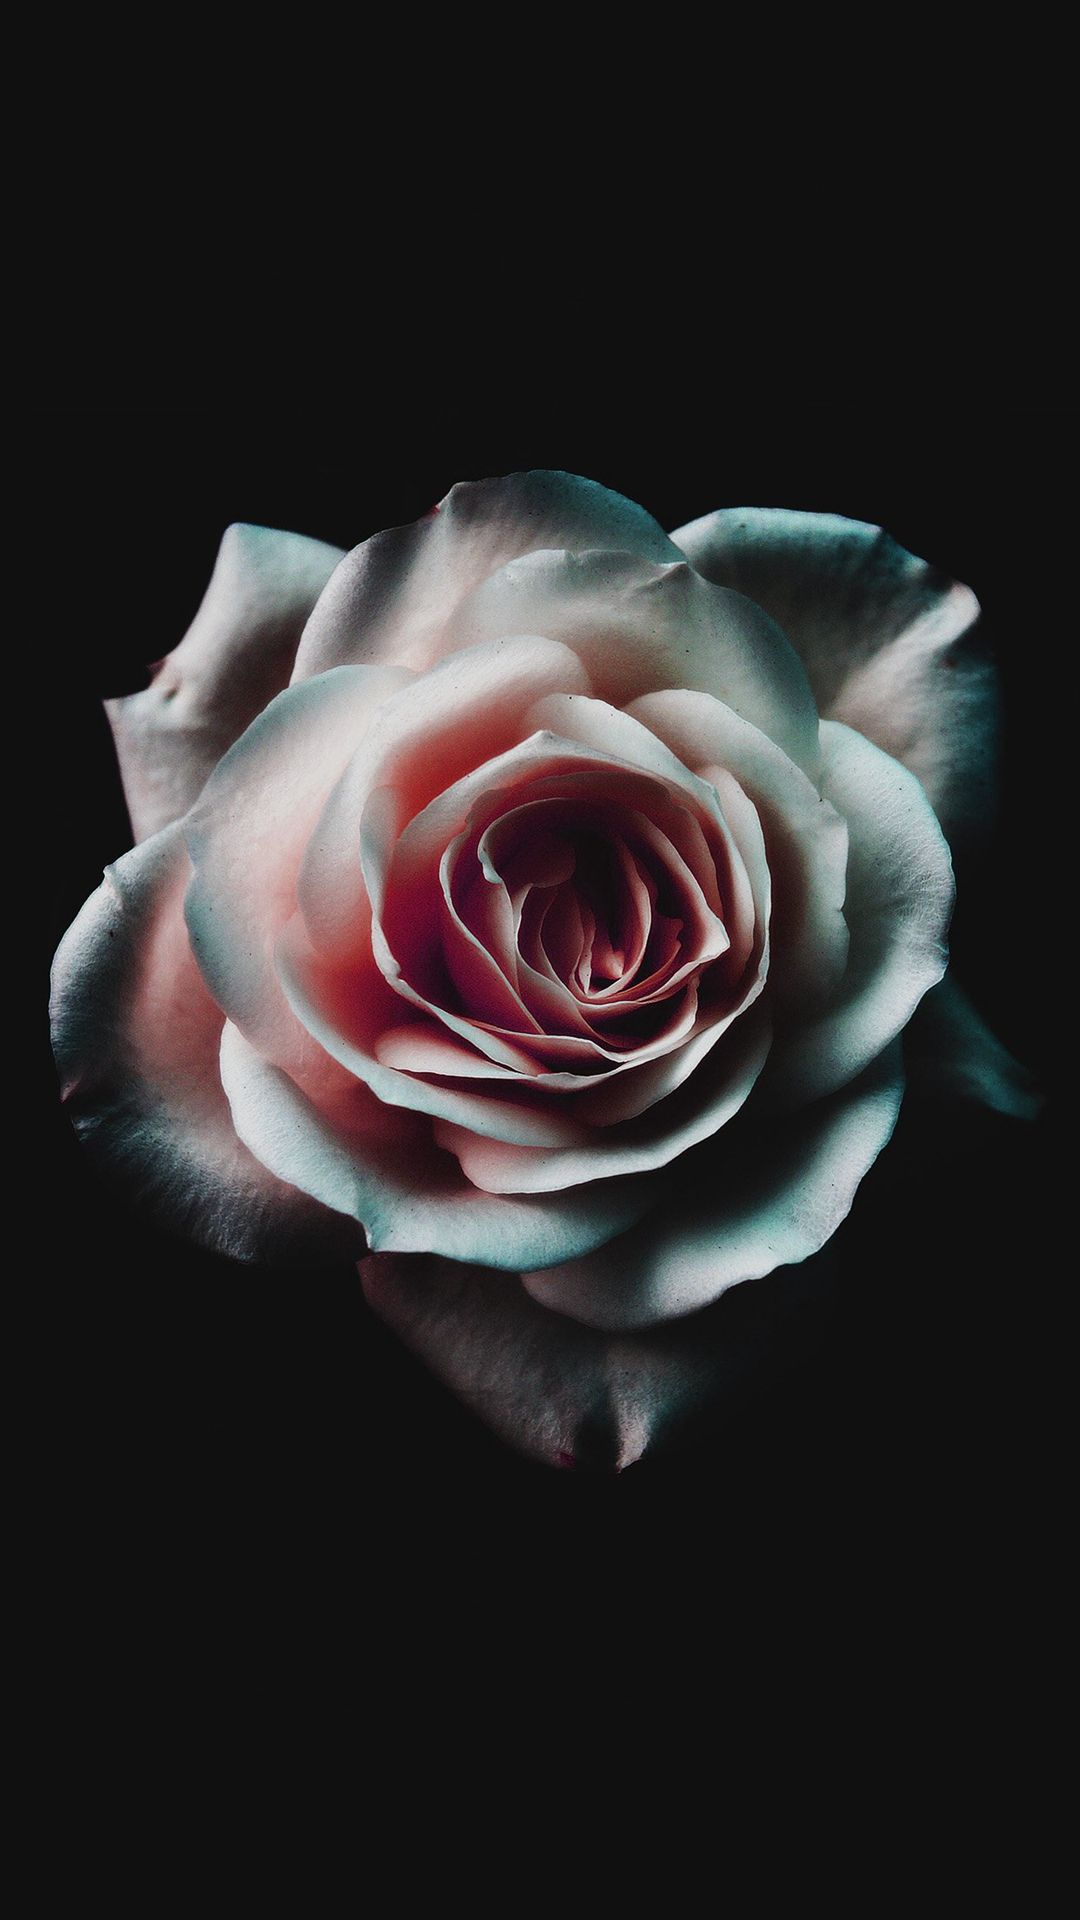 Flower White Dark Red Green Minimal Nature Iphone 6 Wallpaper Rose Wallpaper Flower Wallpaper Iphone Wallpaper Vintage